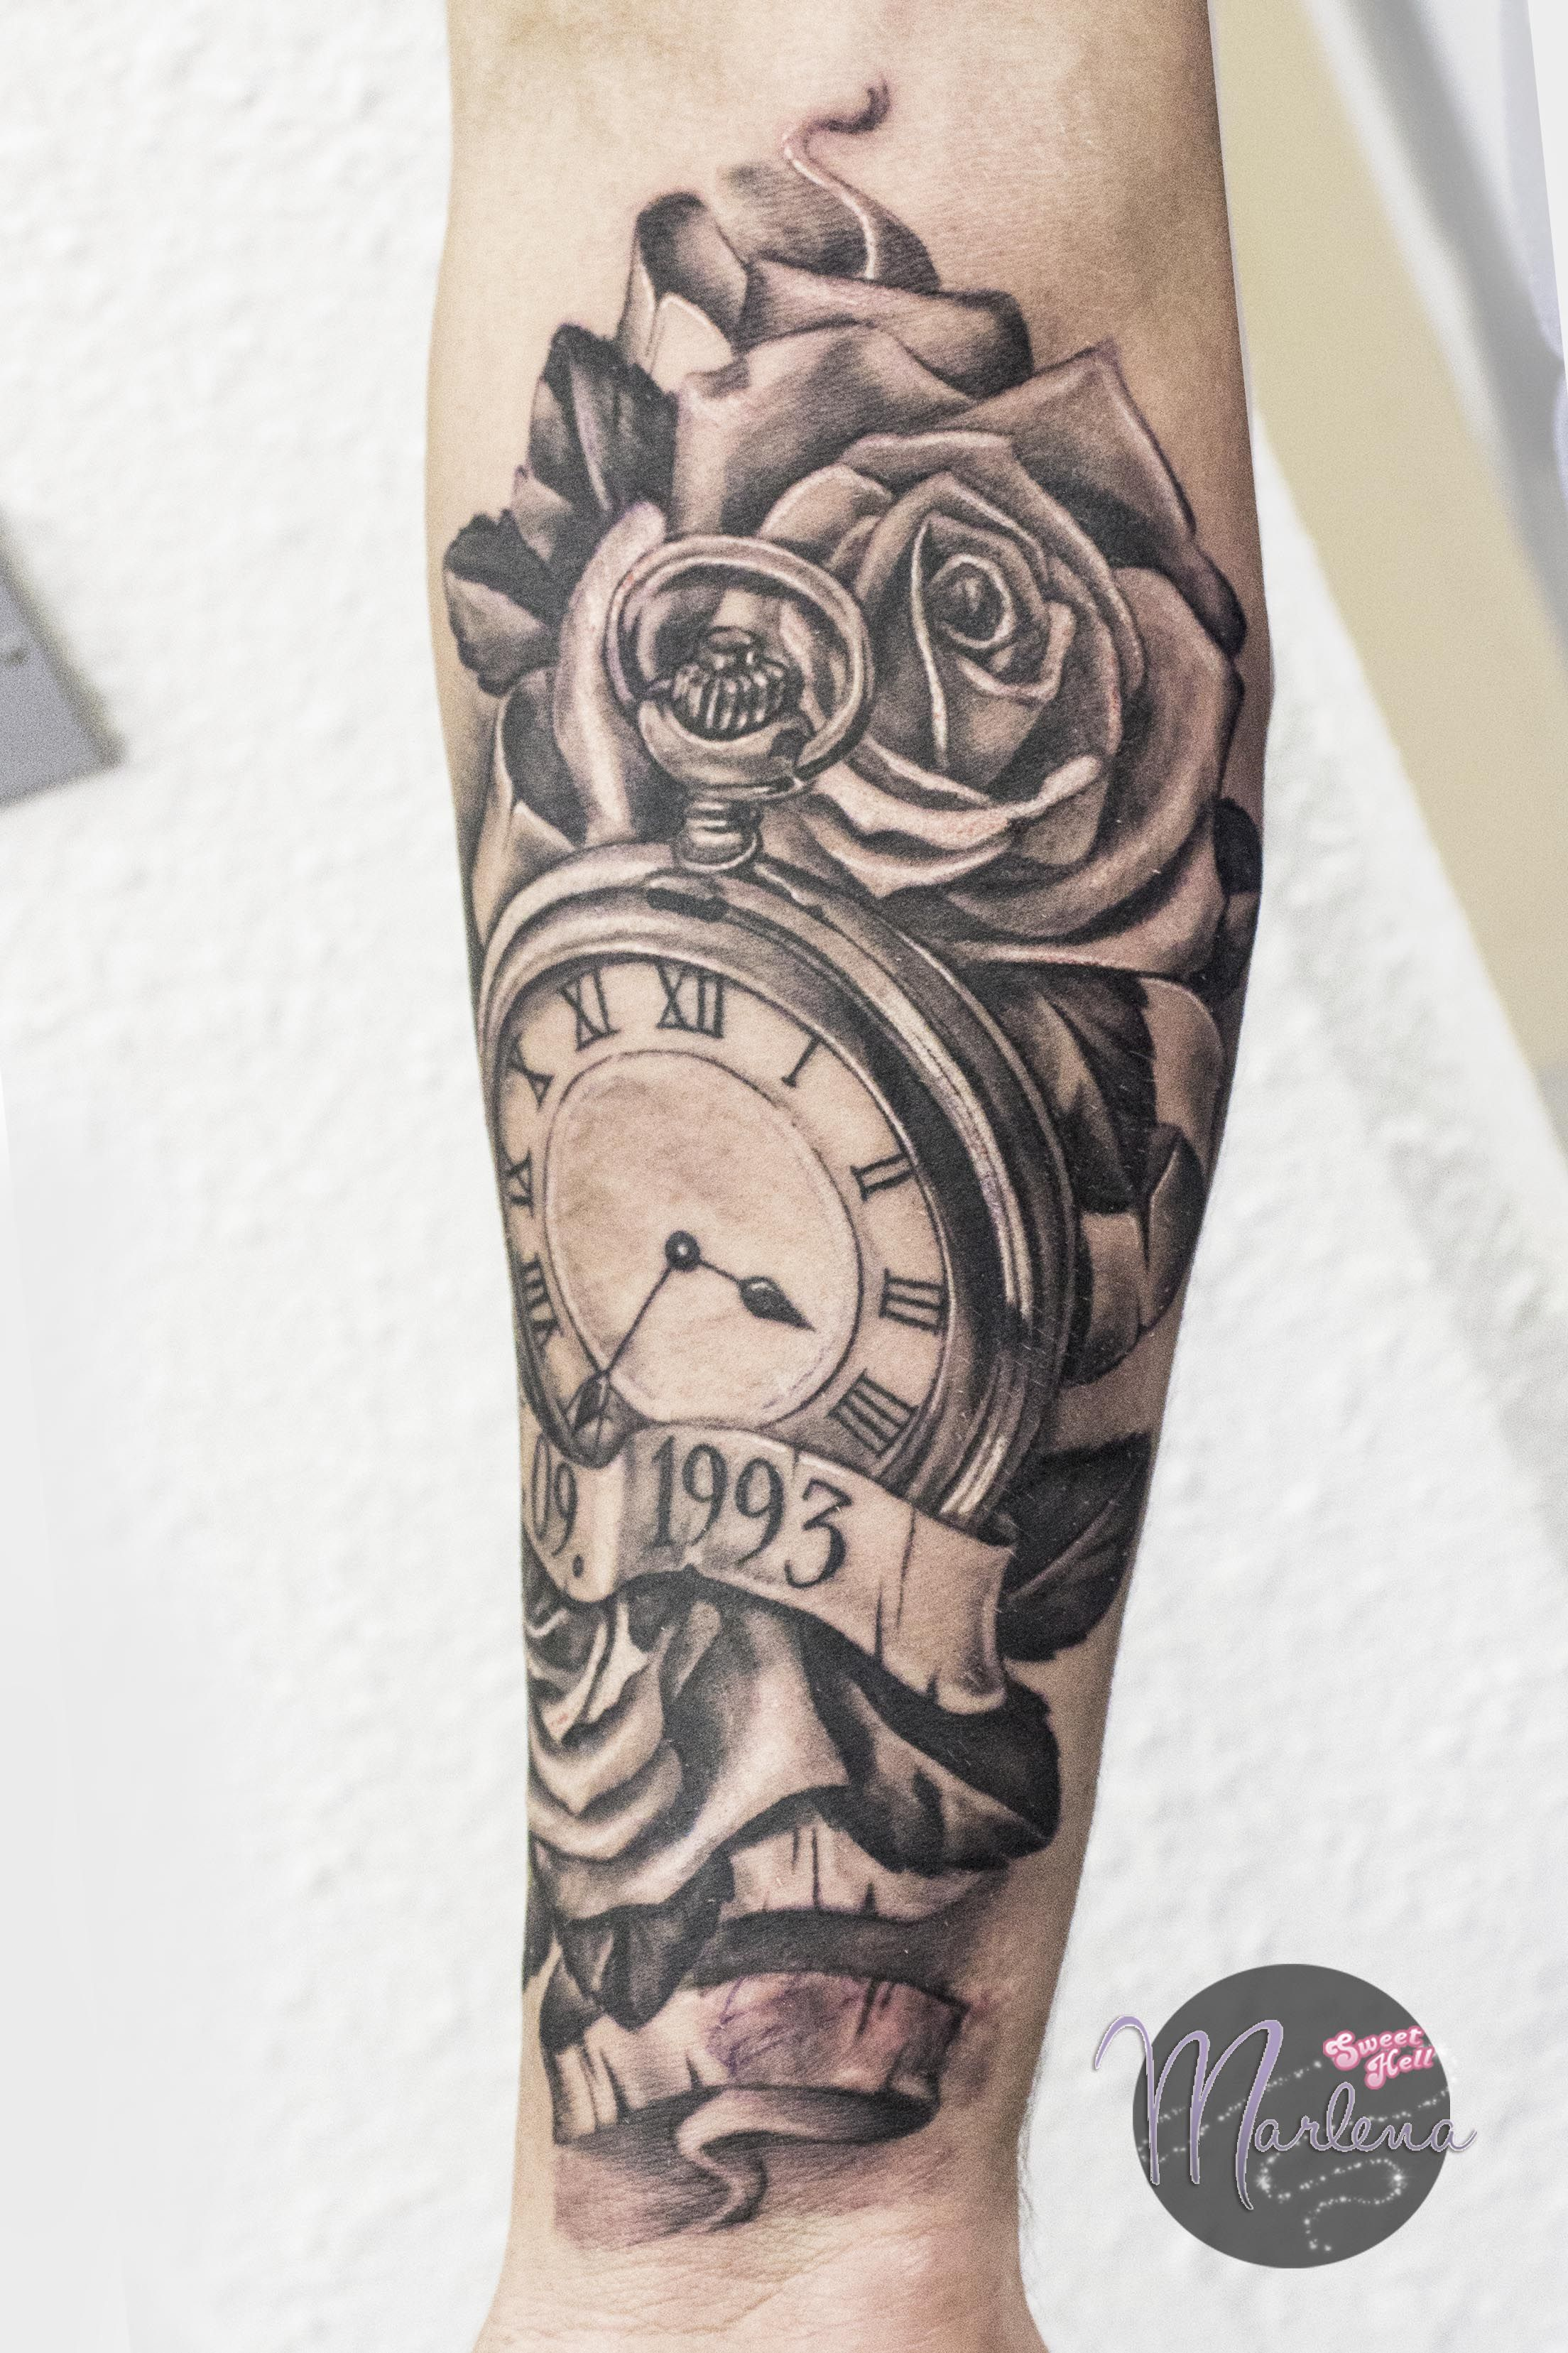 memorial tattoo realistic pocket watch roses and birth date memorialtattoo pocketwatch. Black Bedroom Furniture Sets. Home Design Ideas